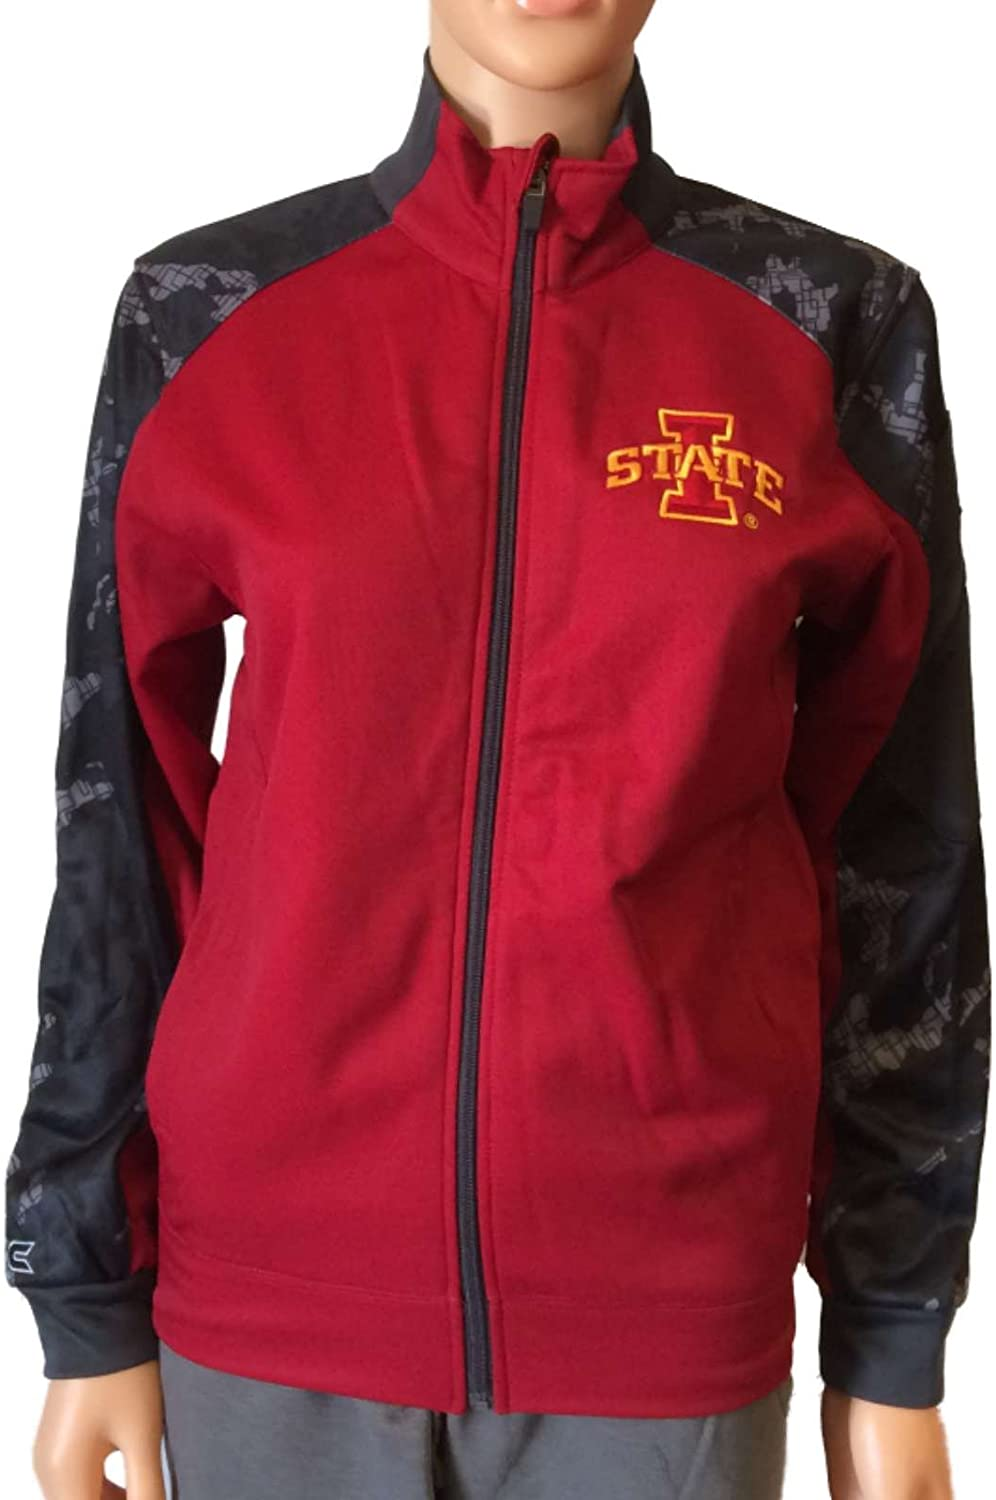 Colosseum Iowa State Cyclones Youth Red and Gray LS Full Zip Jacket (L)